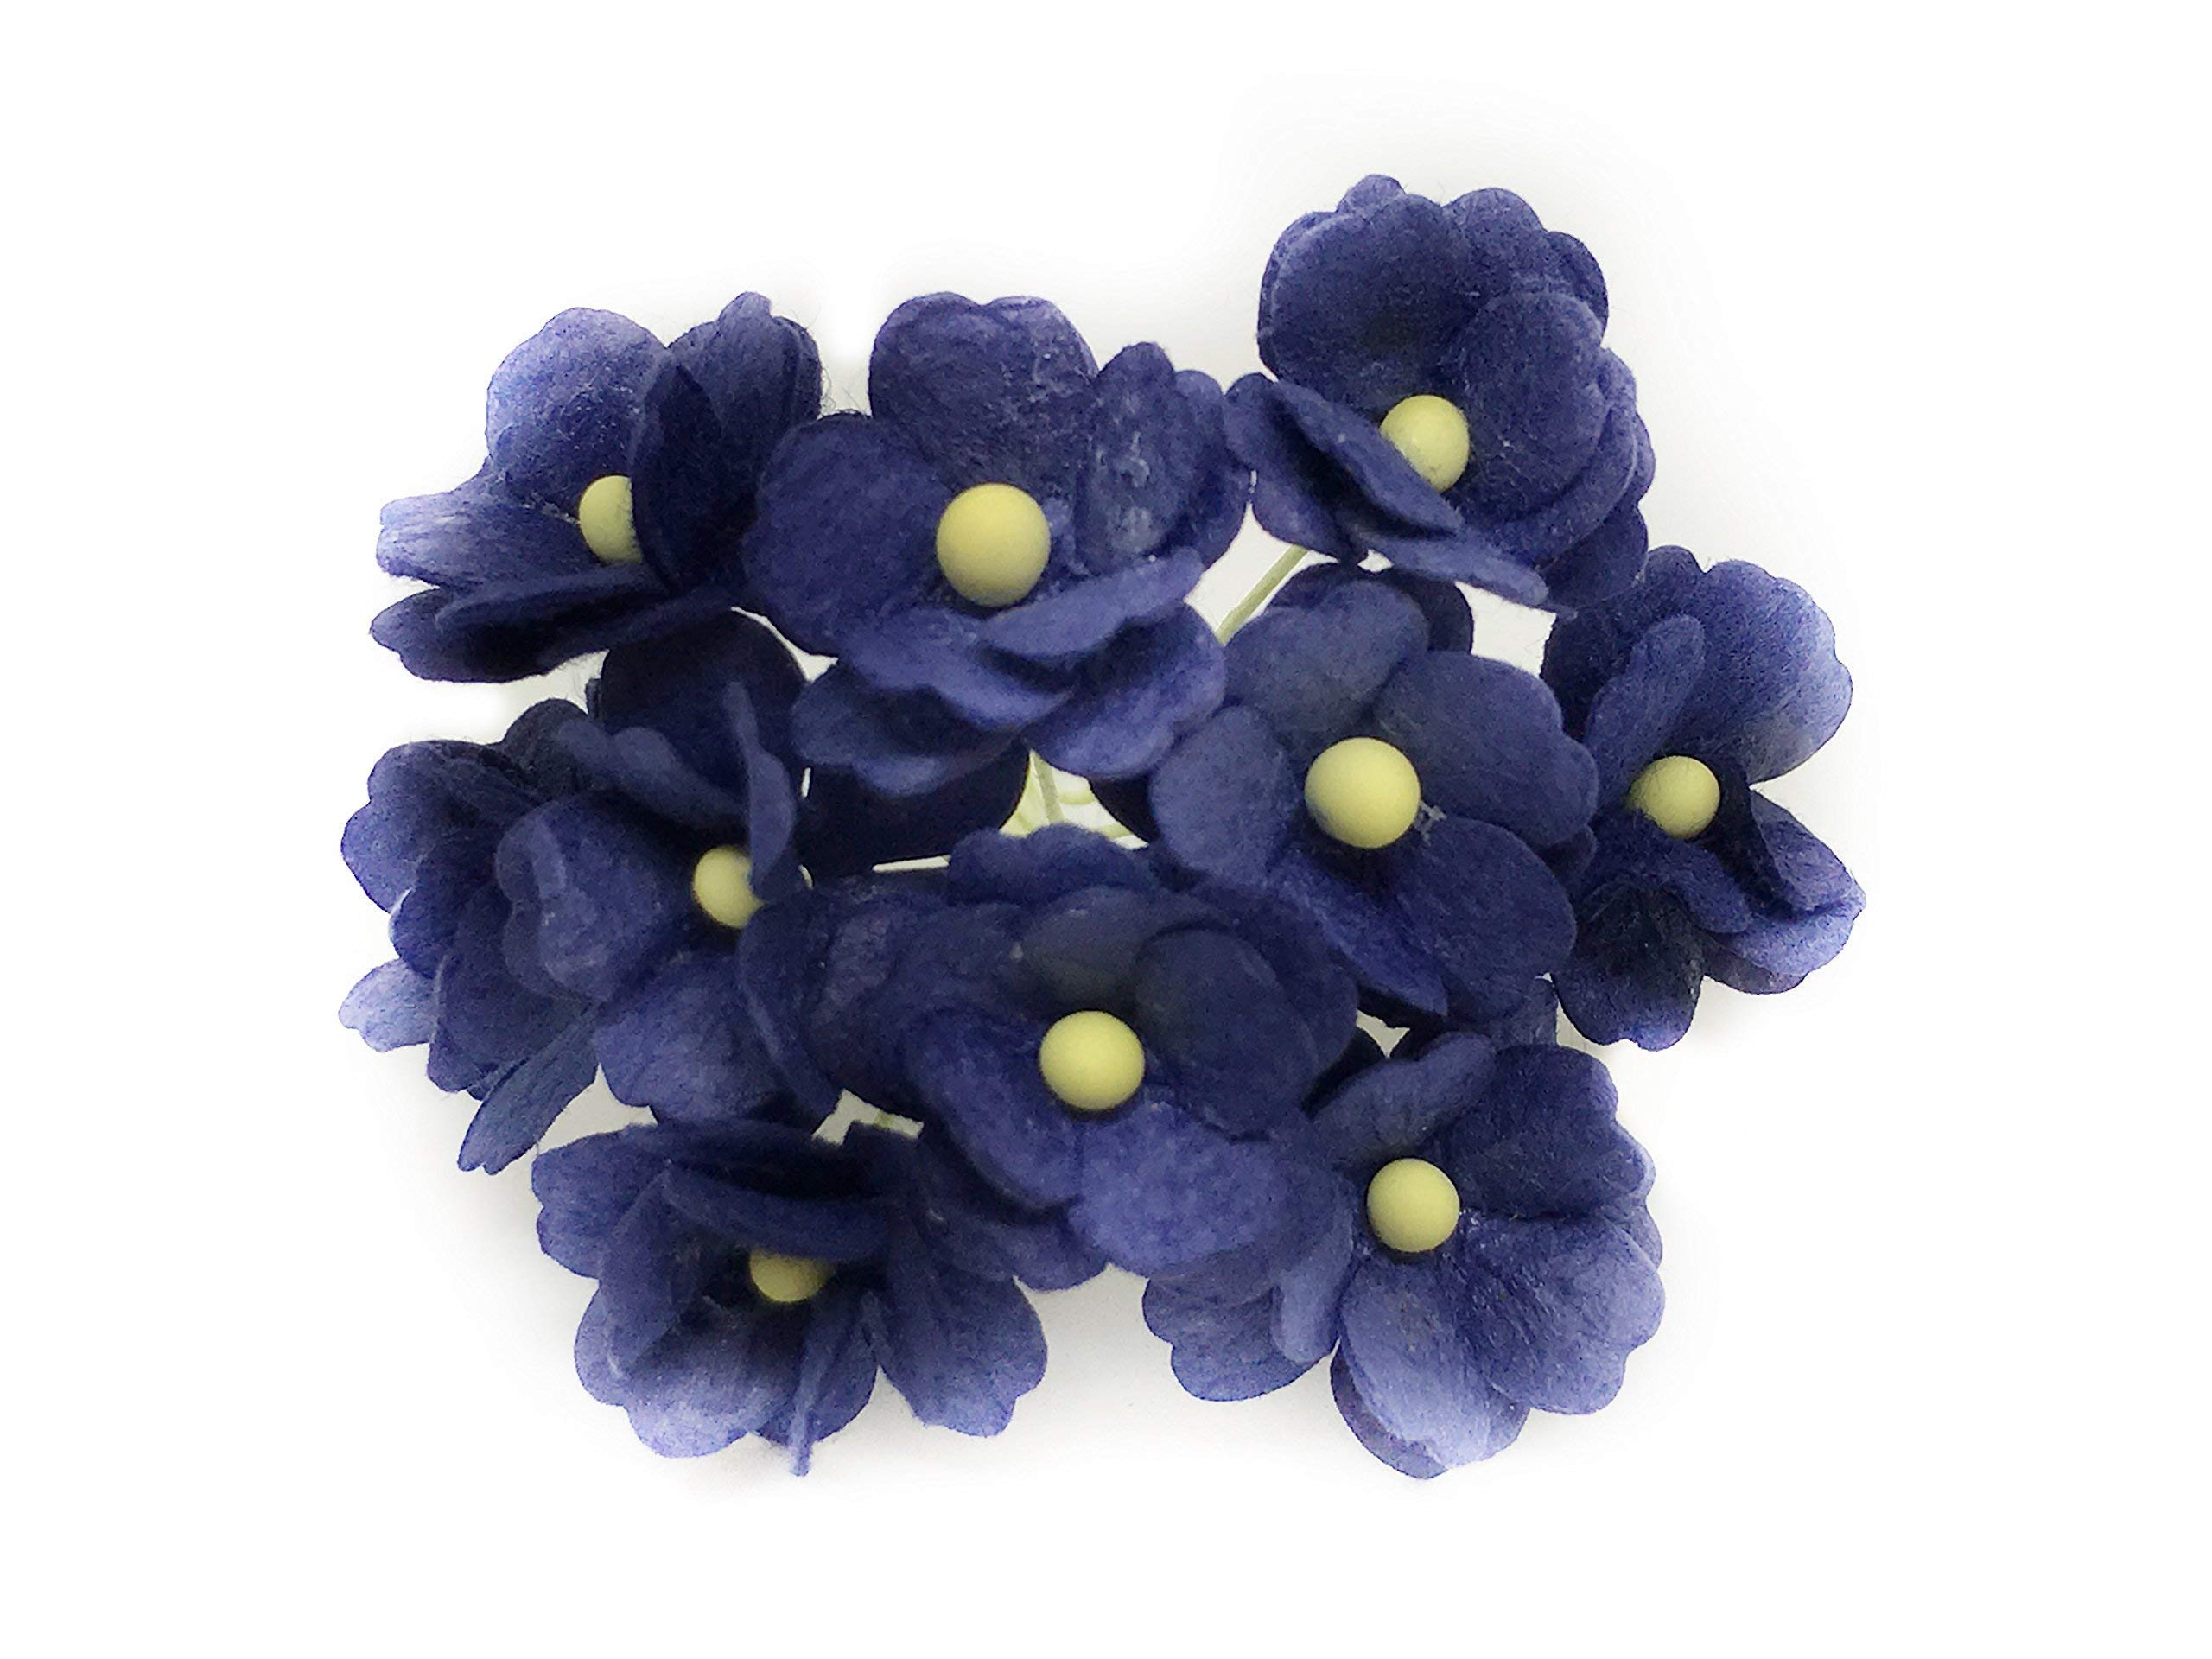 15cm-Navy-Blue-Mulberry-Paper-Flowers-Navy-Paper-Hydrangea-Wedding-Flowers-Wedding-Decor-Wedding-Table-Flowers-Navy-Blue-Wedding-Artificial-Flowers-50-Pieces